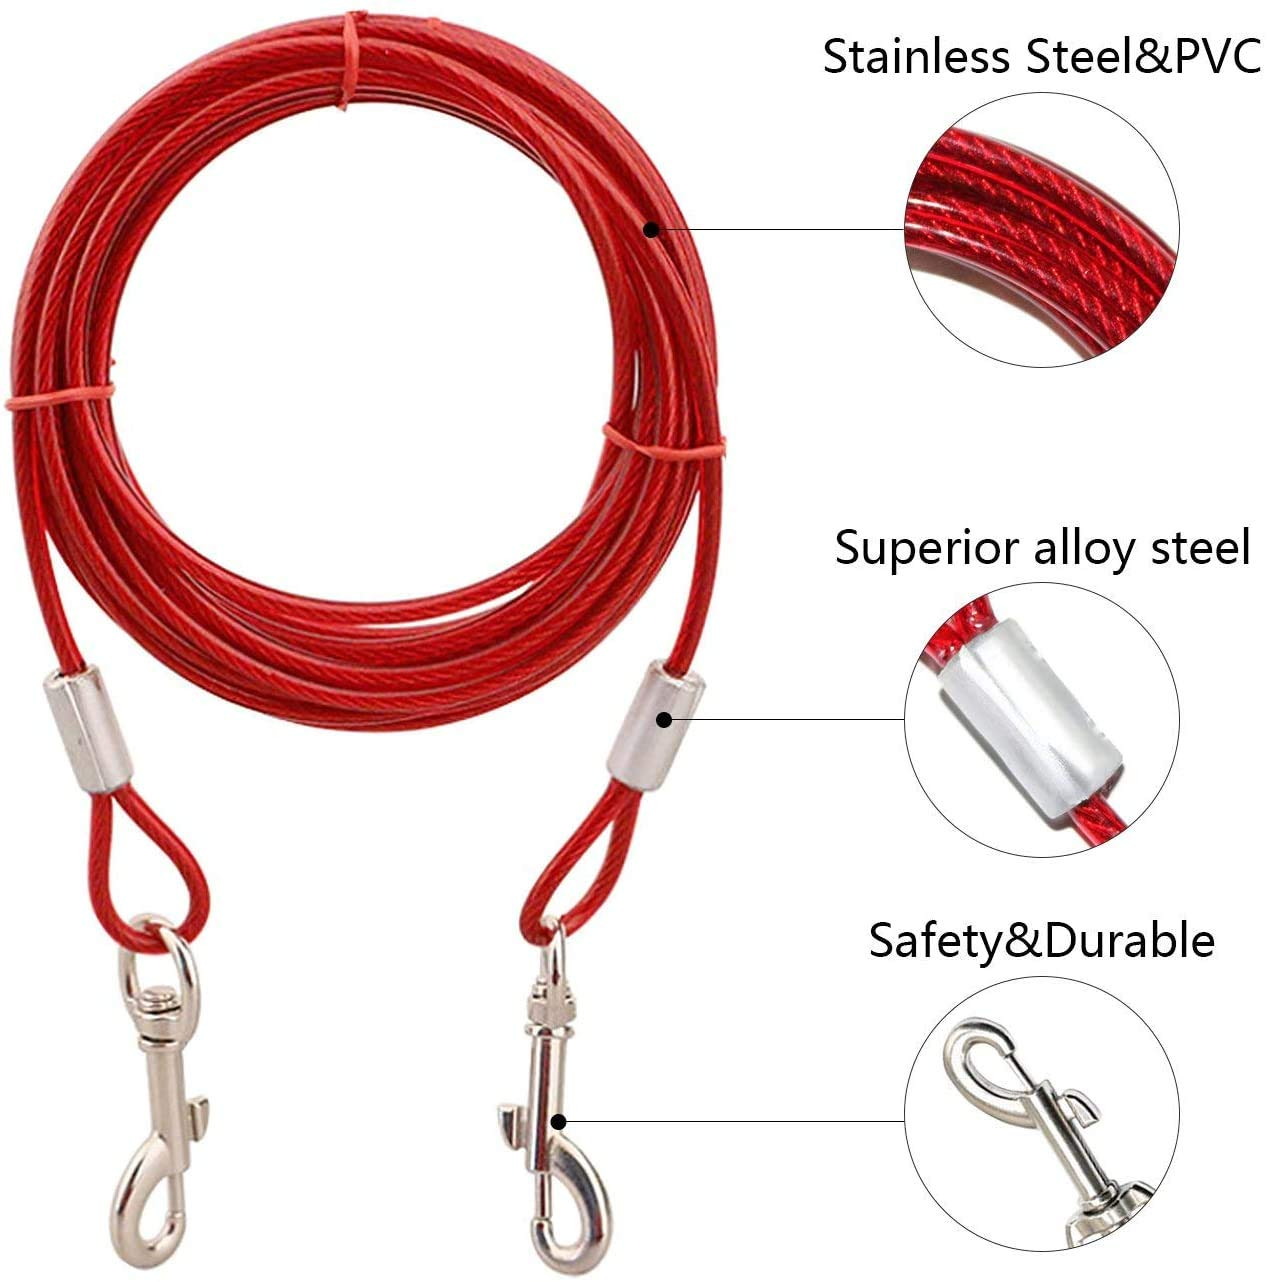 Pets Empire 15ft Dog Tie Out Cable, Tie-Out Cable For Pet Dogs Up To 60 Pounds